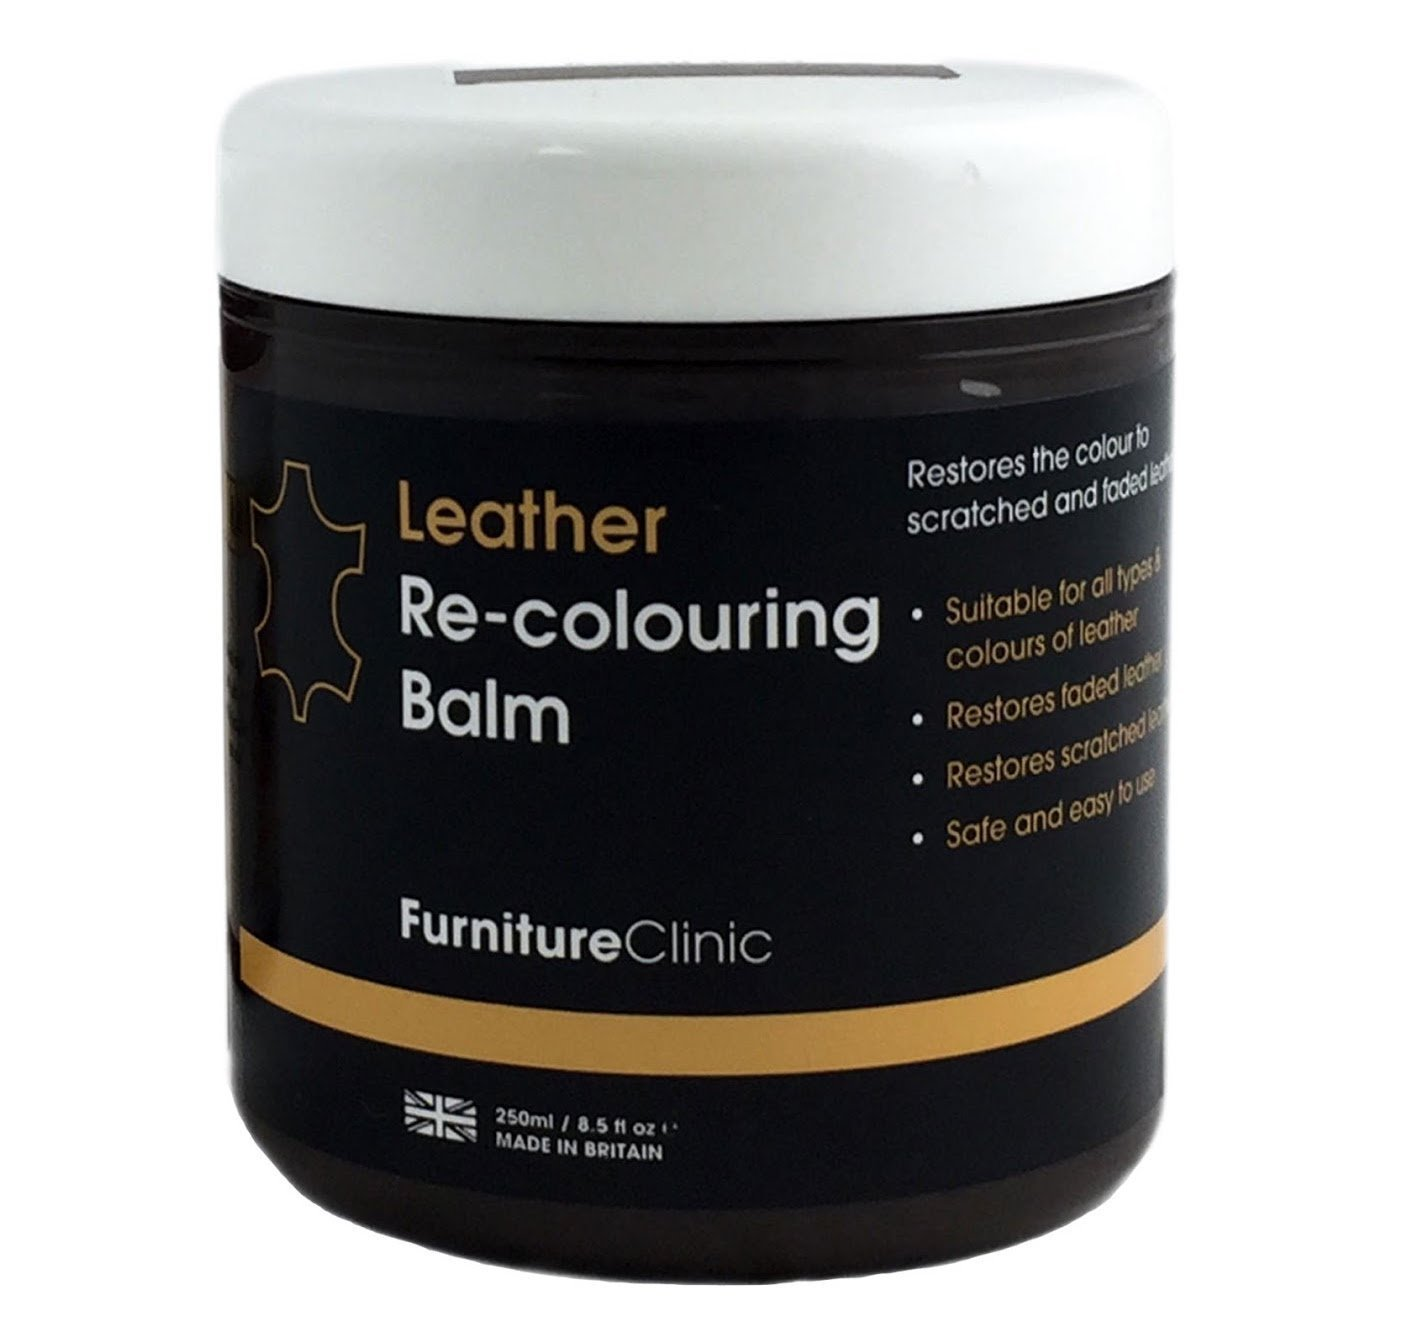 Furniture Clinic Leather Re-Coloring Balm